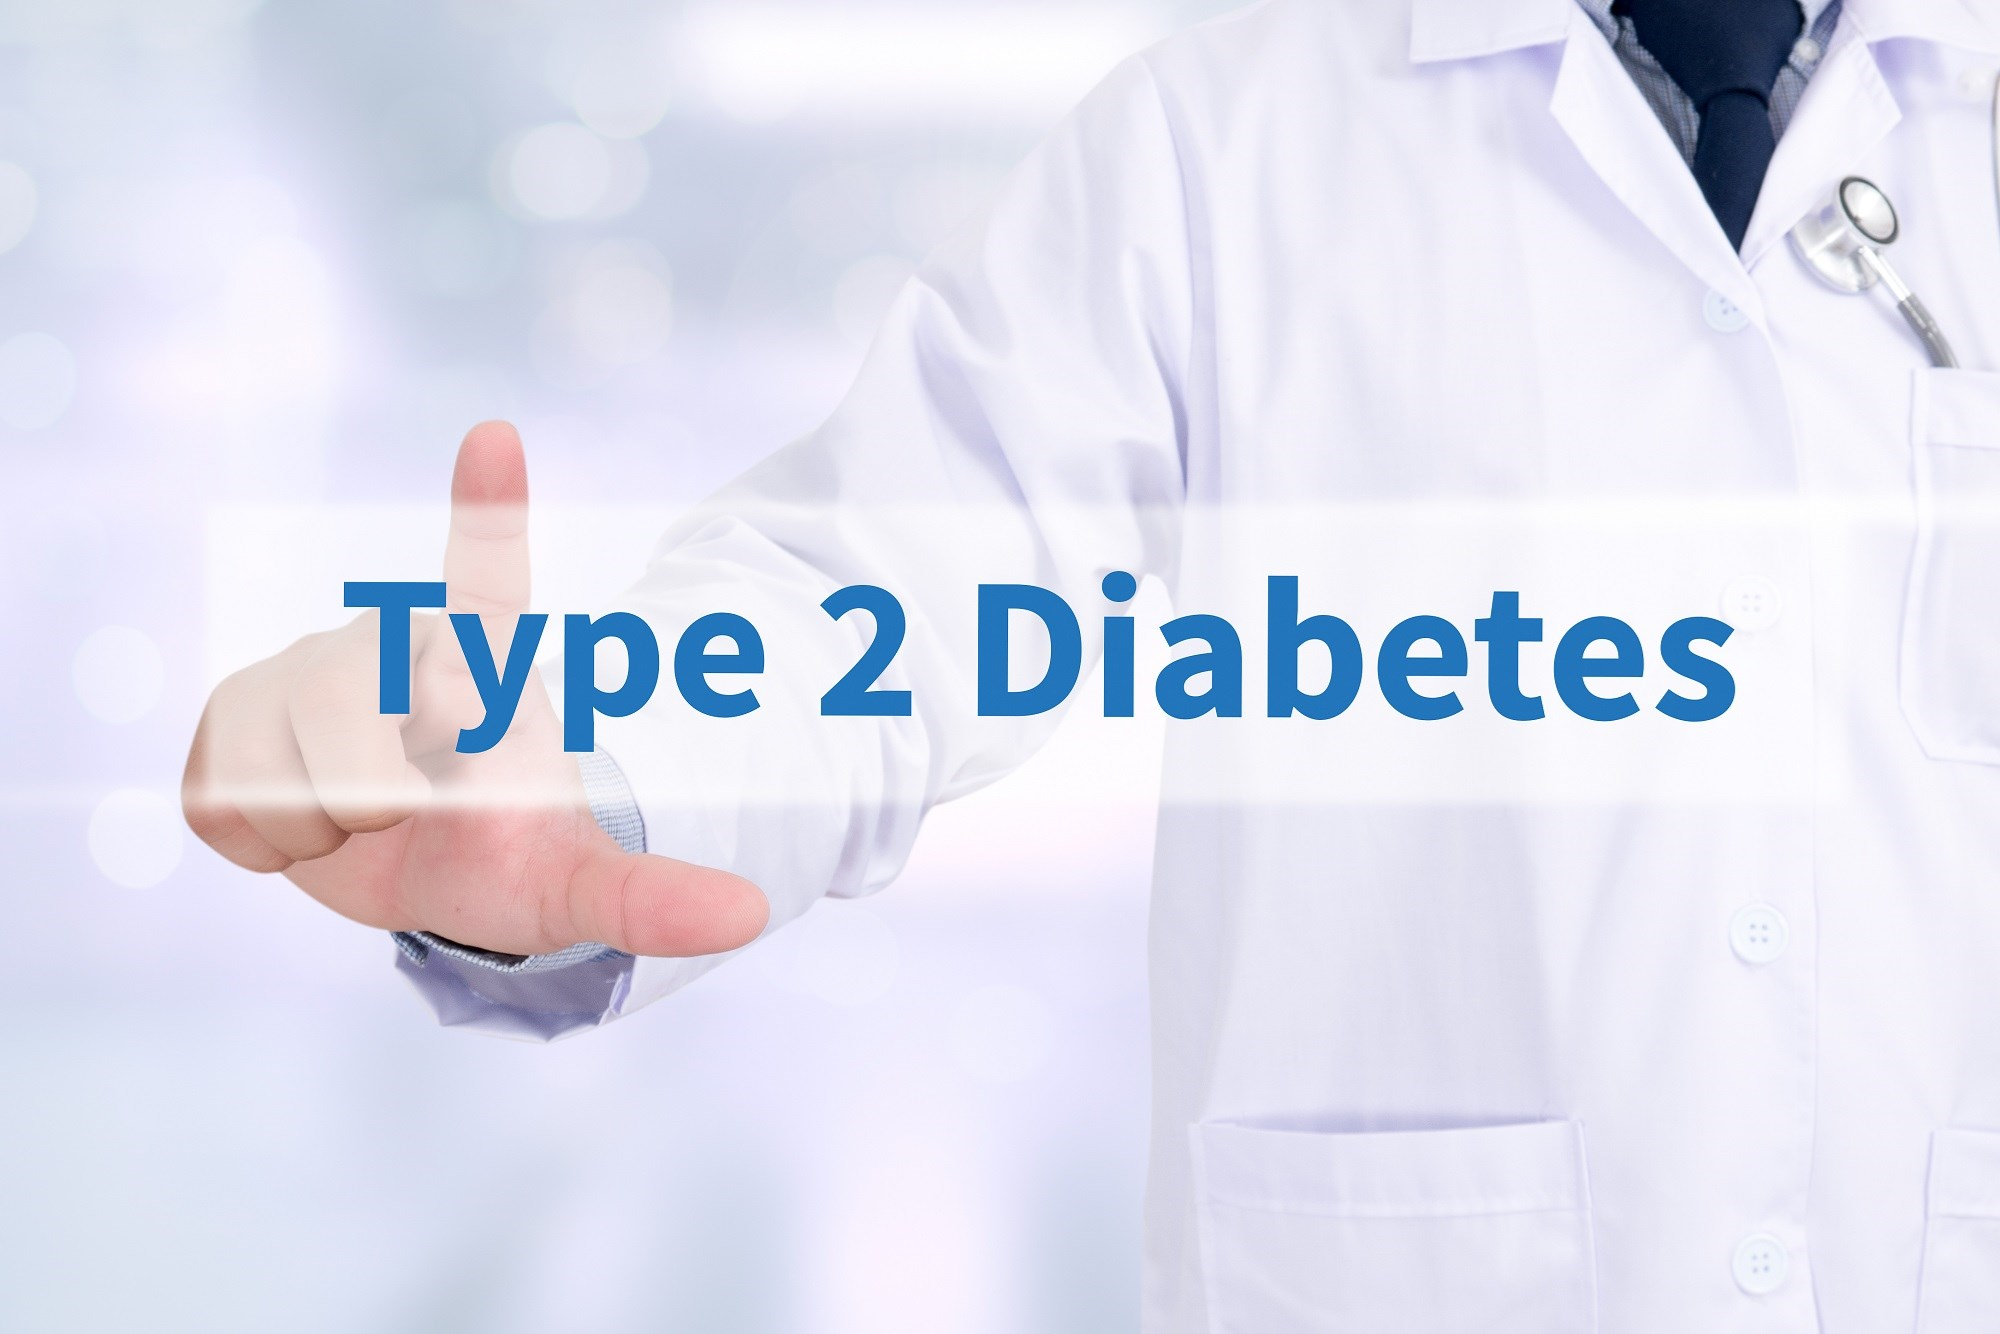 Plasma Acylcarnitines May Indicate Risk for Type 2 Diabetes